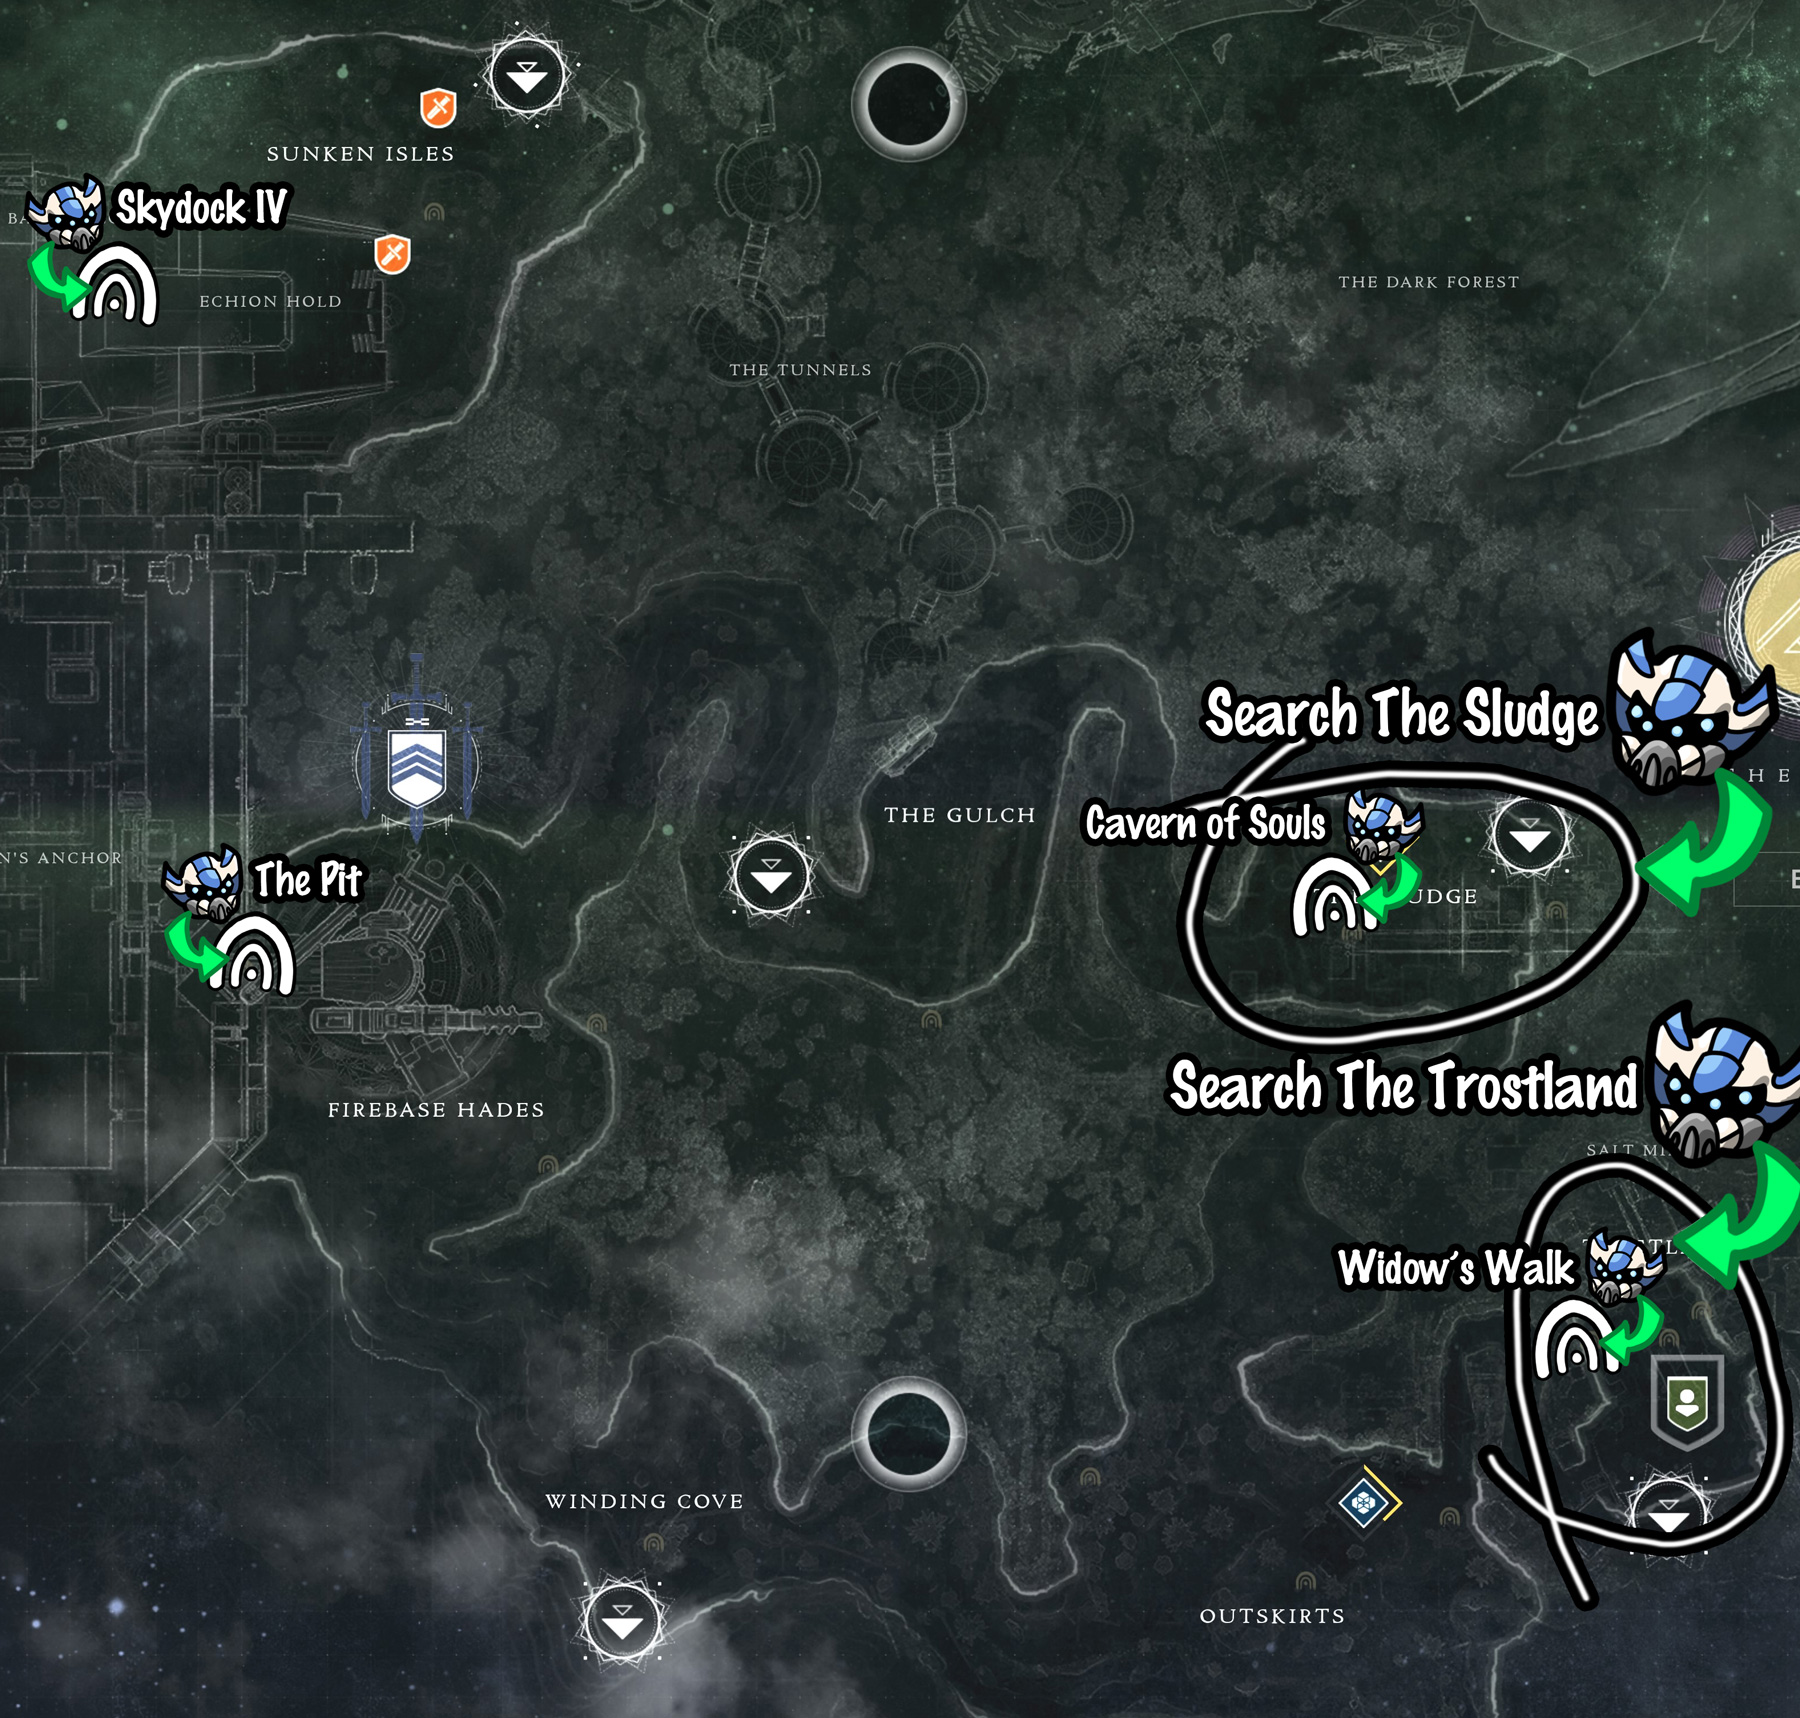 spider s wanted bounties 11 20 destiny 2 destiny loot cave wanted bounties 11 20 destiny 2